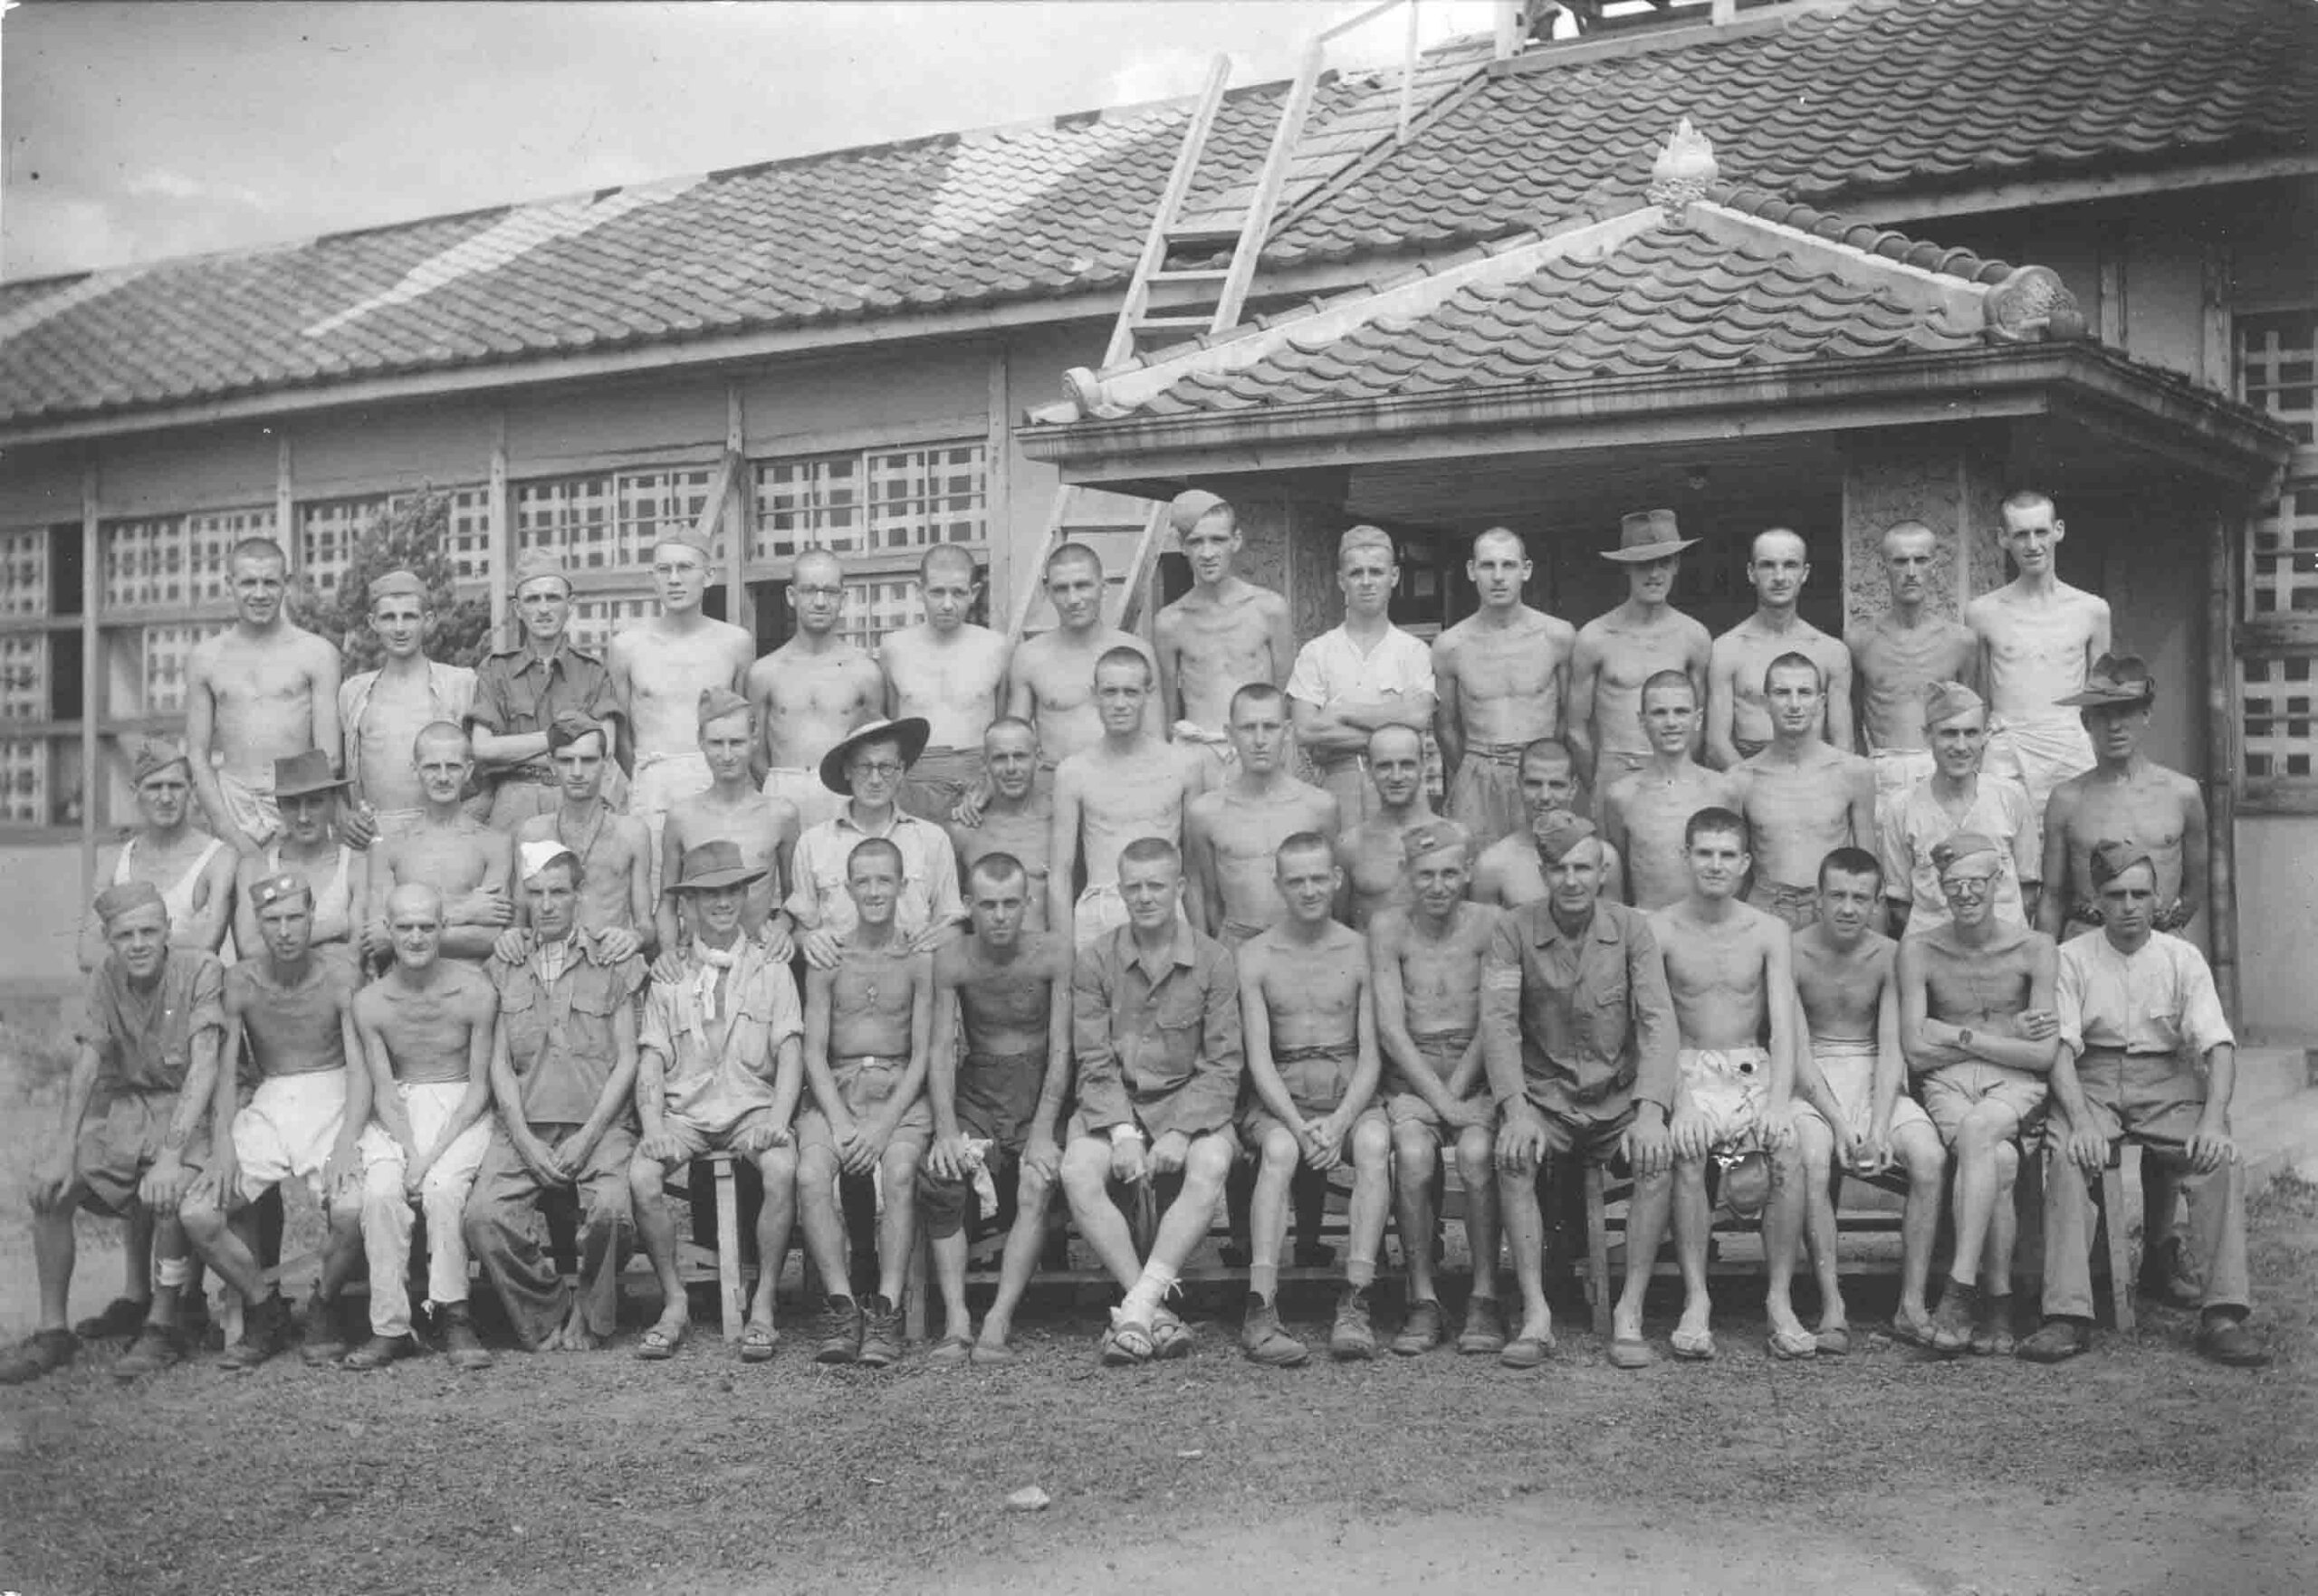 X001-3829/002/010  Group of Australian and British prisoners of war posing in front of the main prisoner of war camp building, Japan 1945.